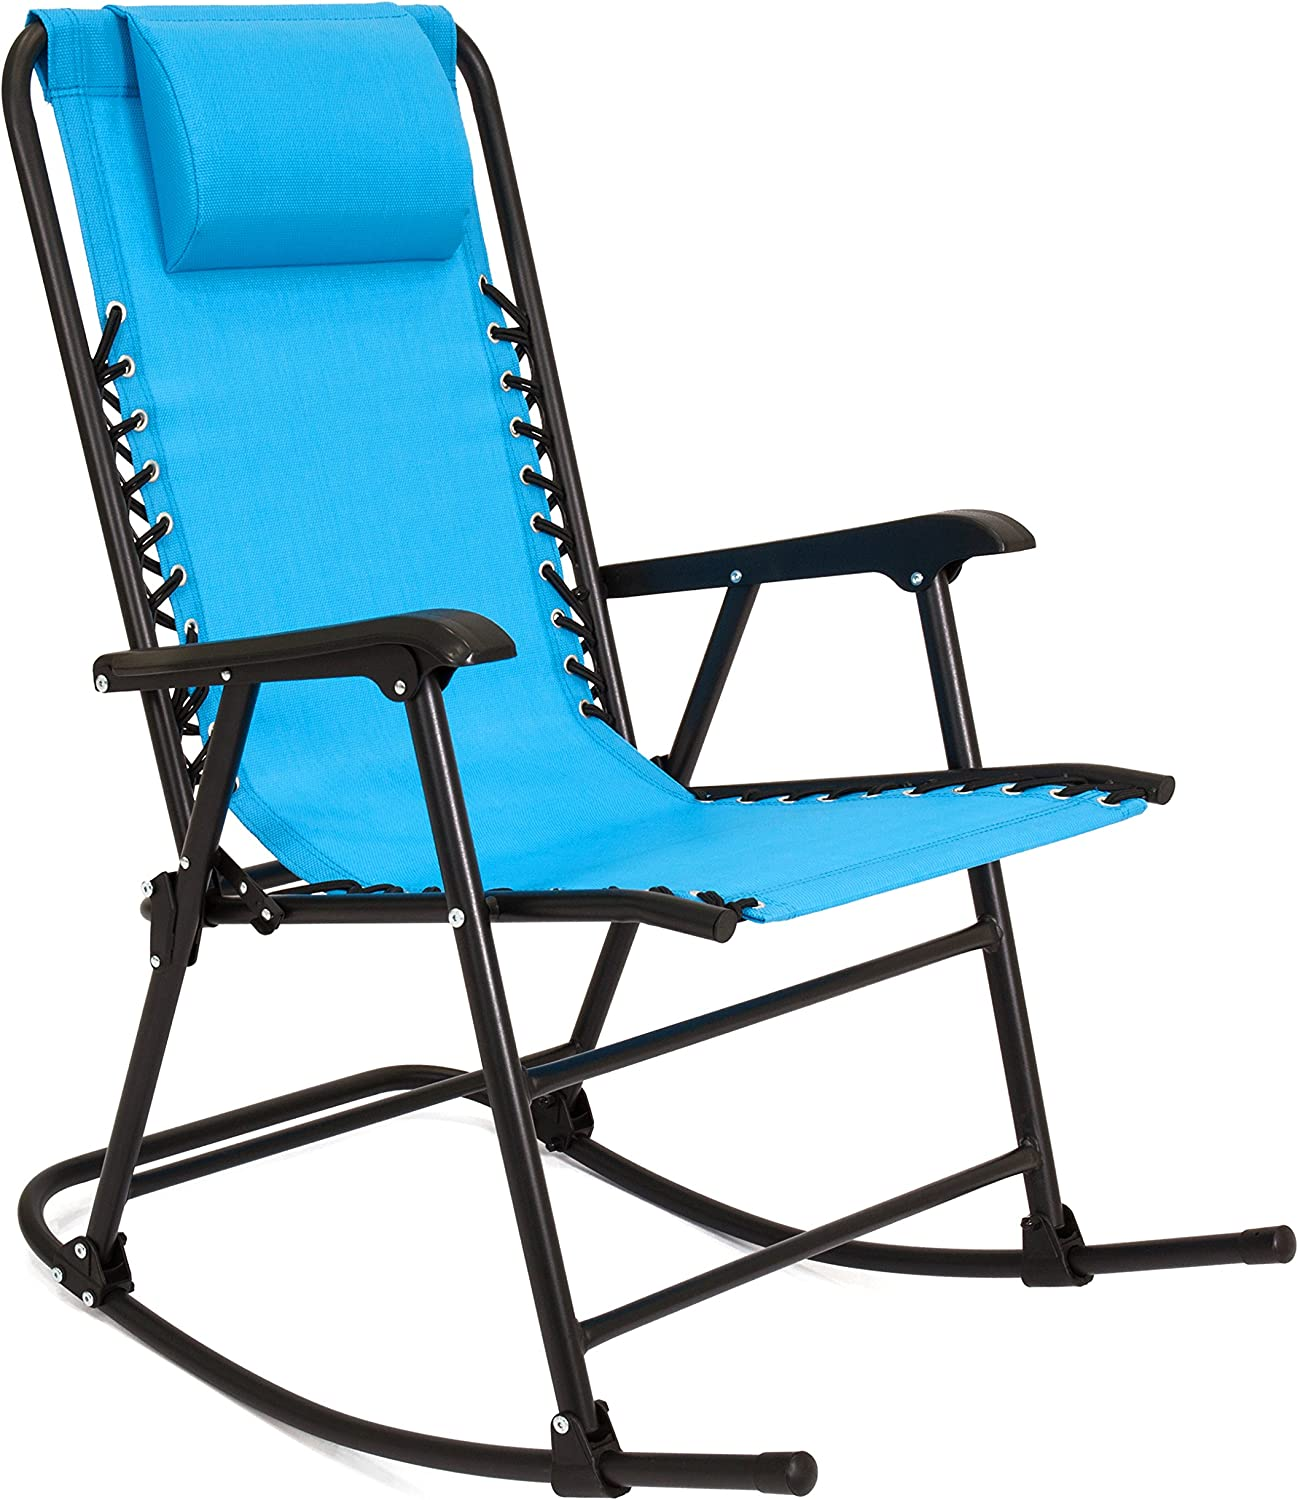 Best Choice Products Foldable Zero Gravity Rocking Mesh Patio Recliner Chair w/Headrest Pillow - Light Blue